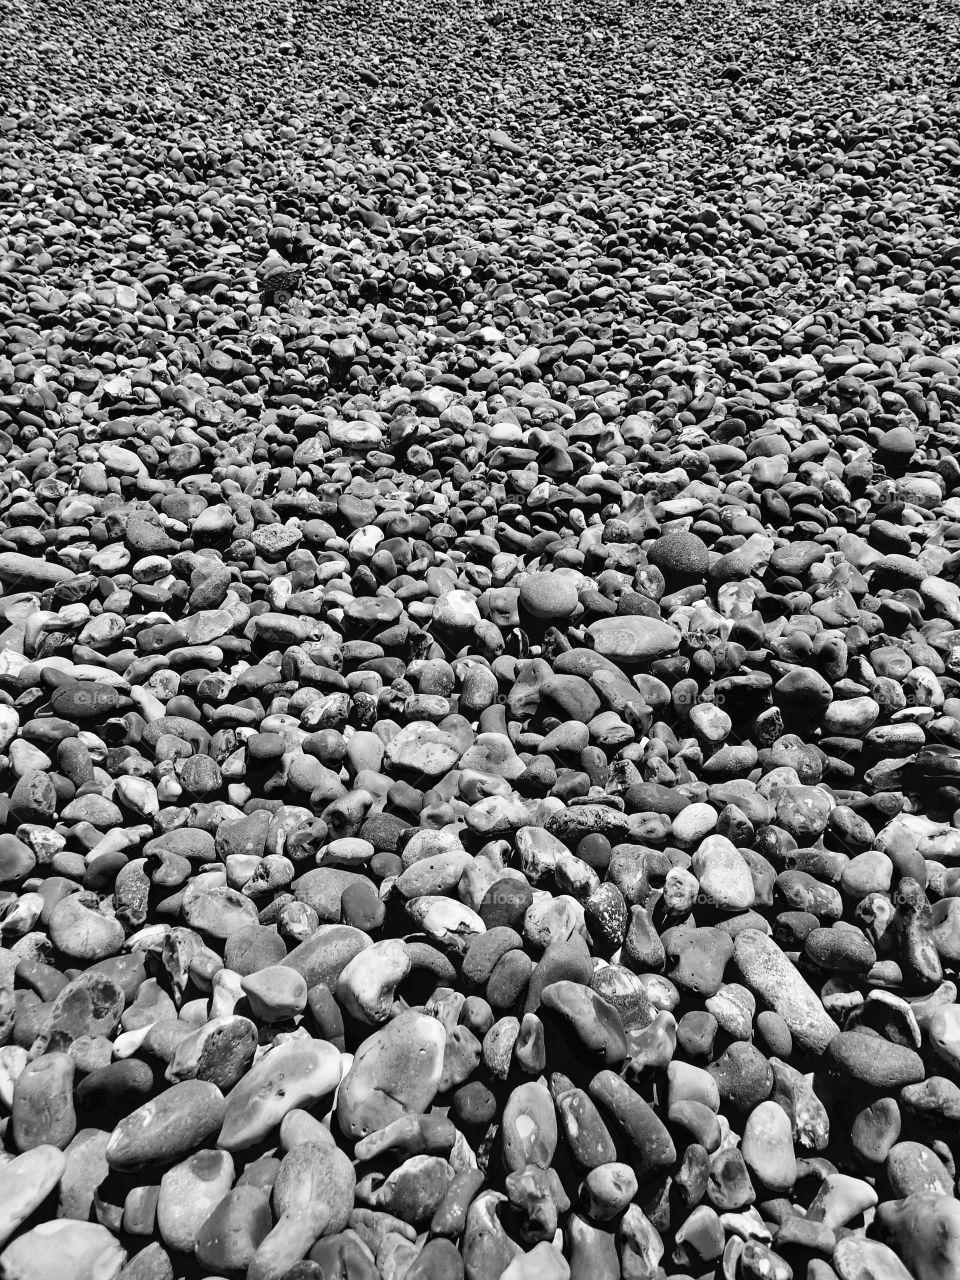 A closeup of the smooth texture of rocks on a beach